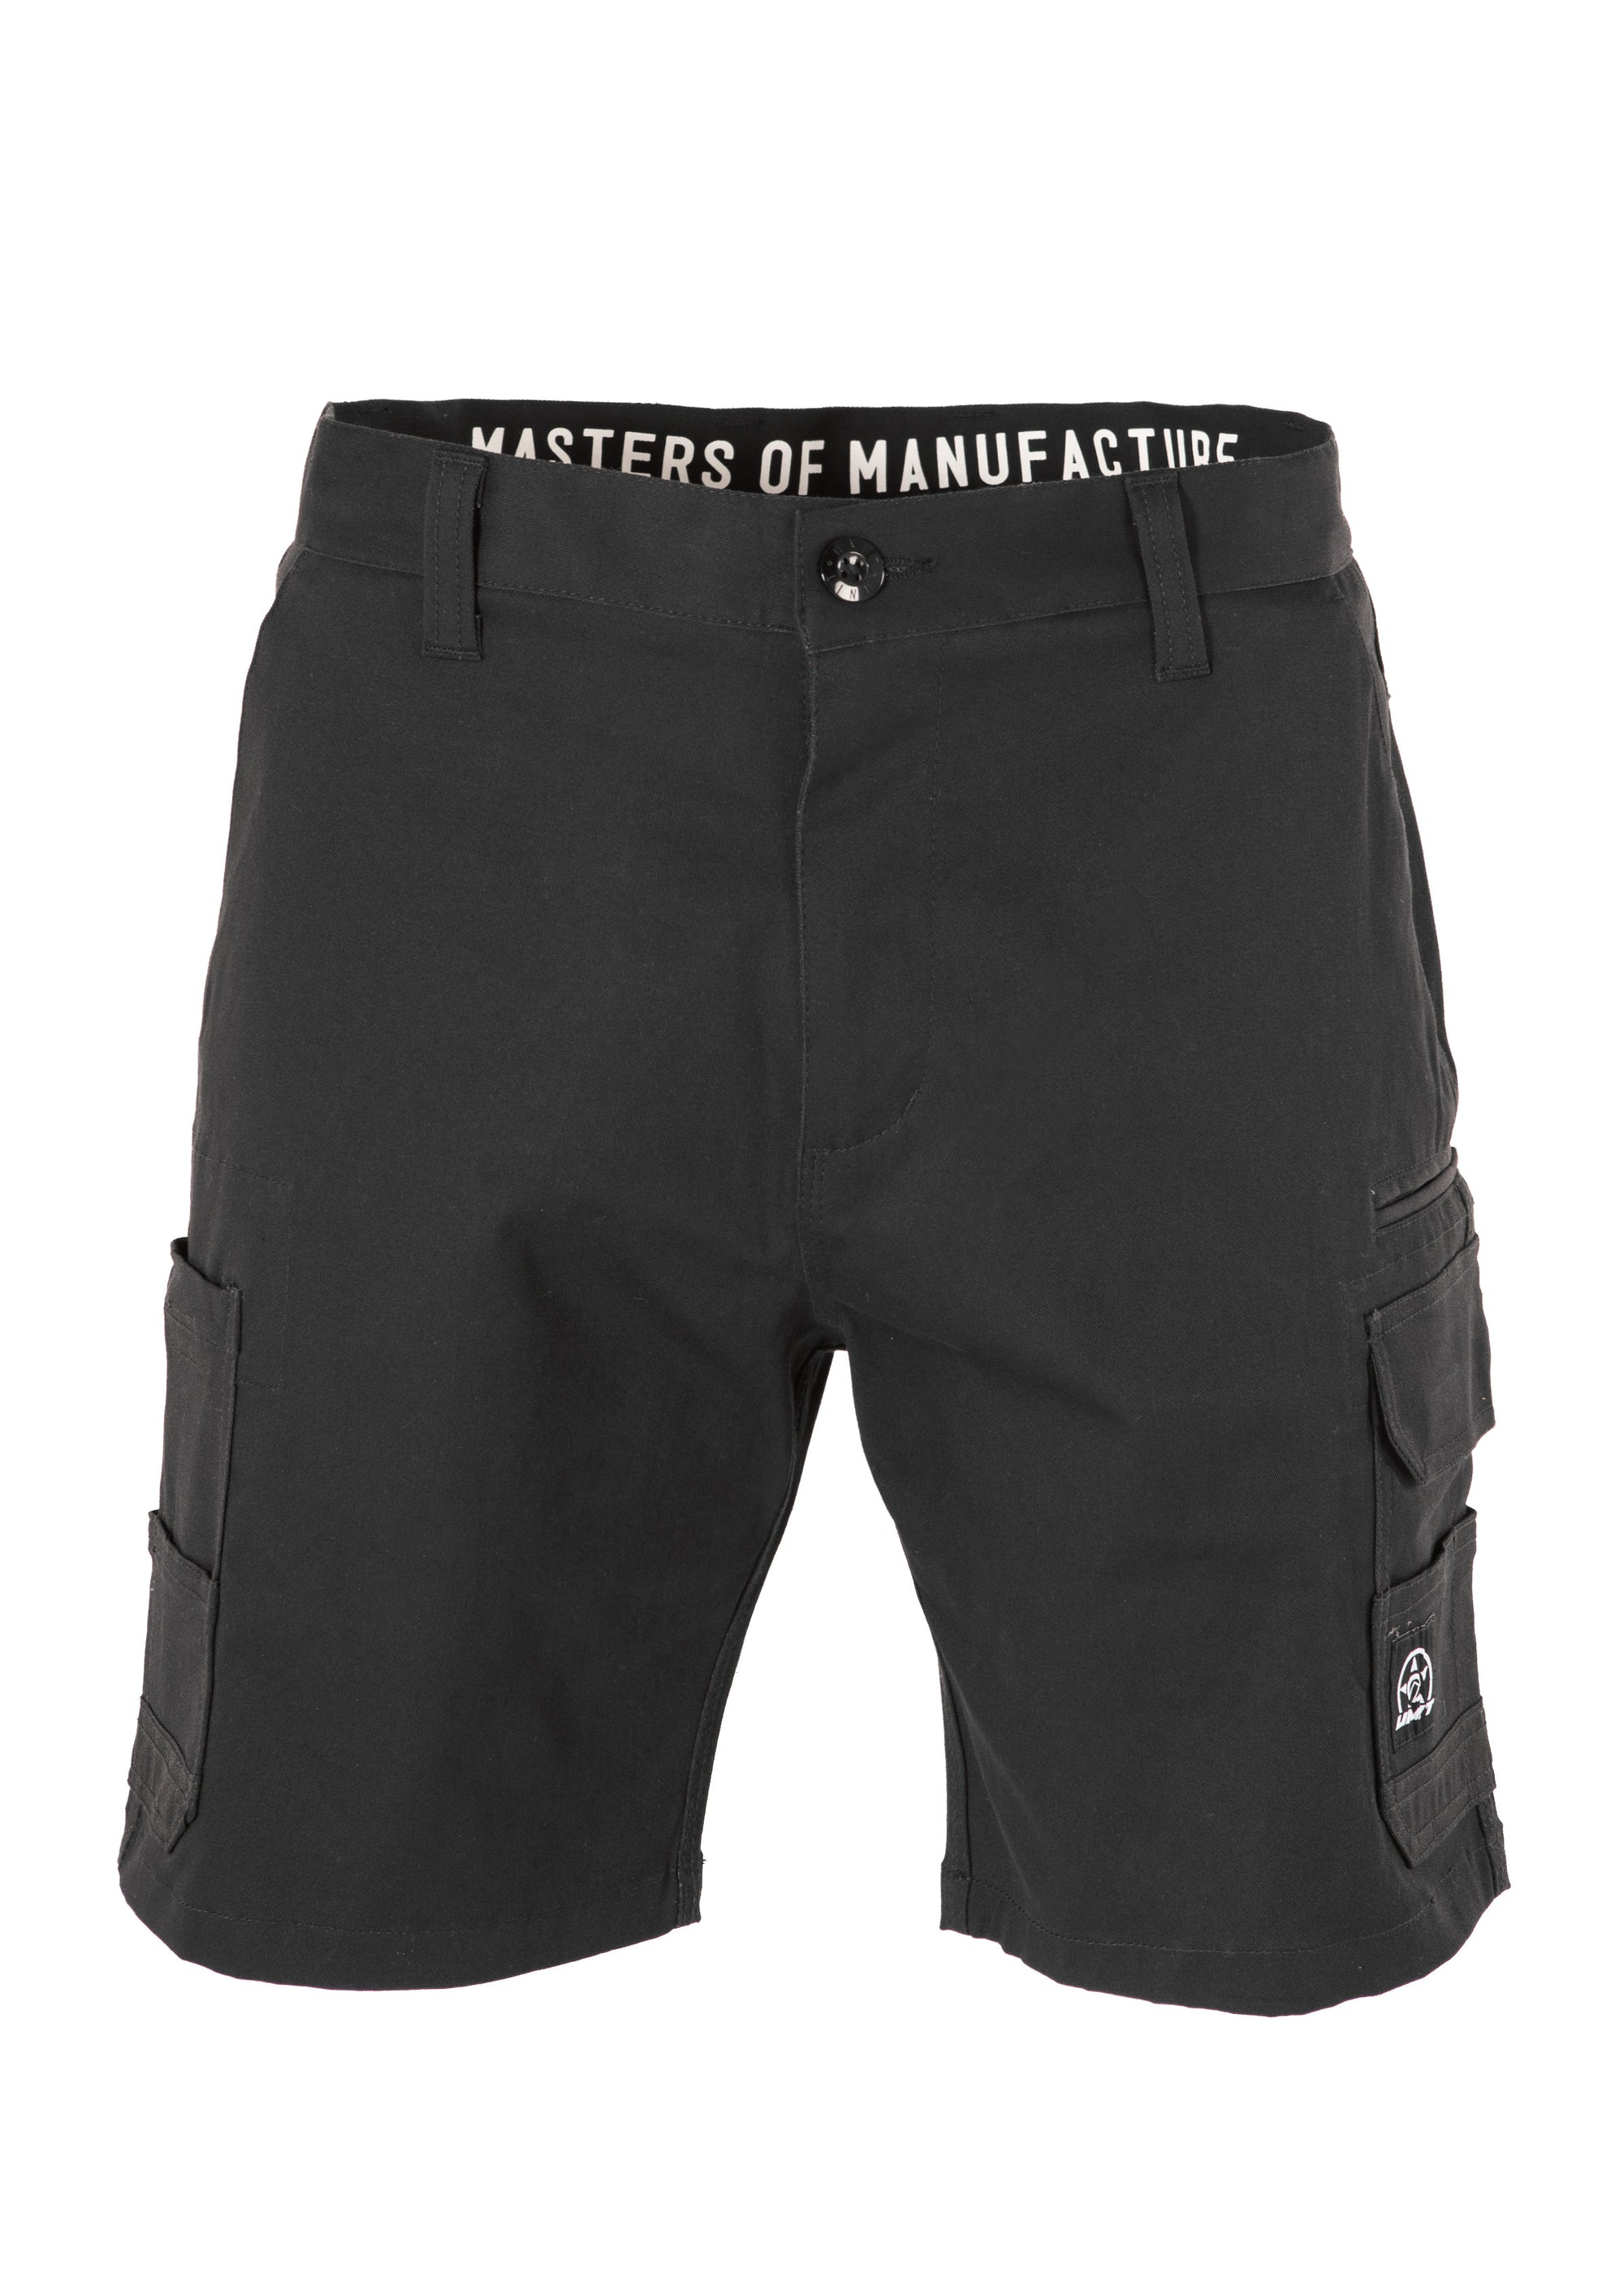 Demolition Cargo Work Shorts